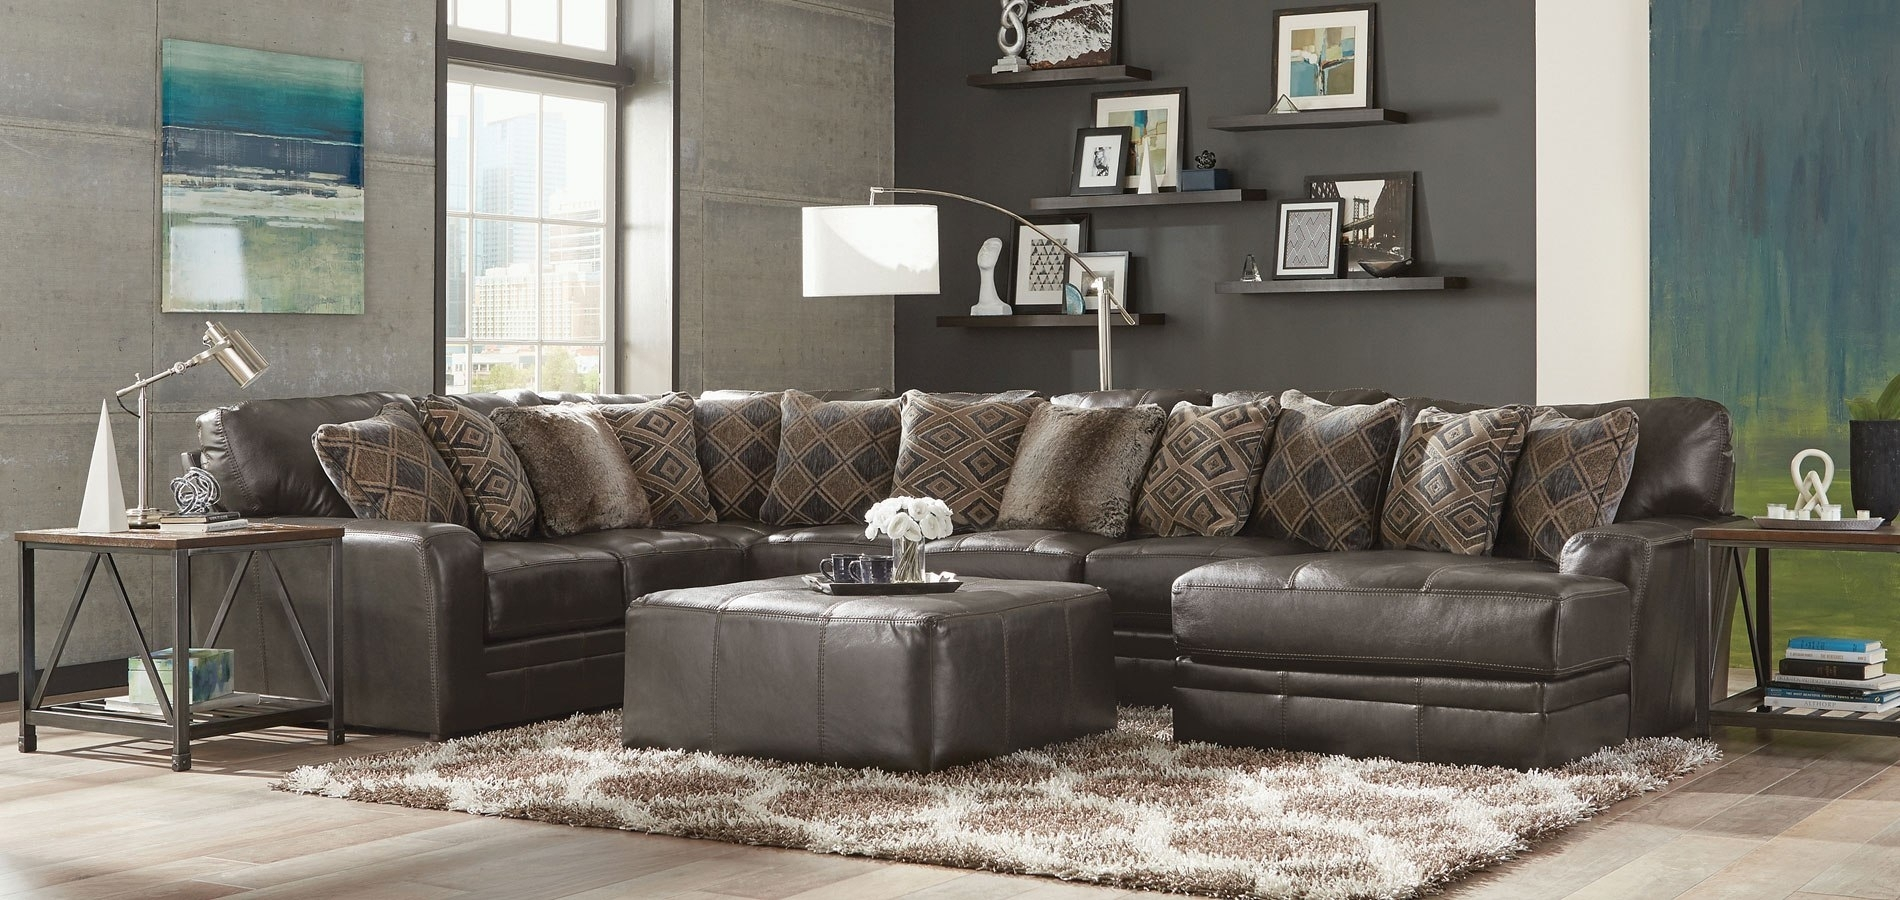 Denali Modular Sectional (Steel) Jackson Furniture | Furniture Cart in Denali Charcoal Grey 6 Piece Reclining Sectionals With 2 Power Headrests (Image 14 of 30)